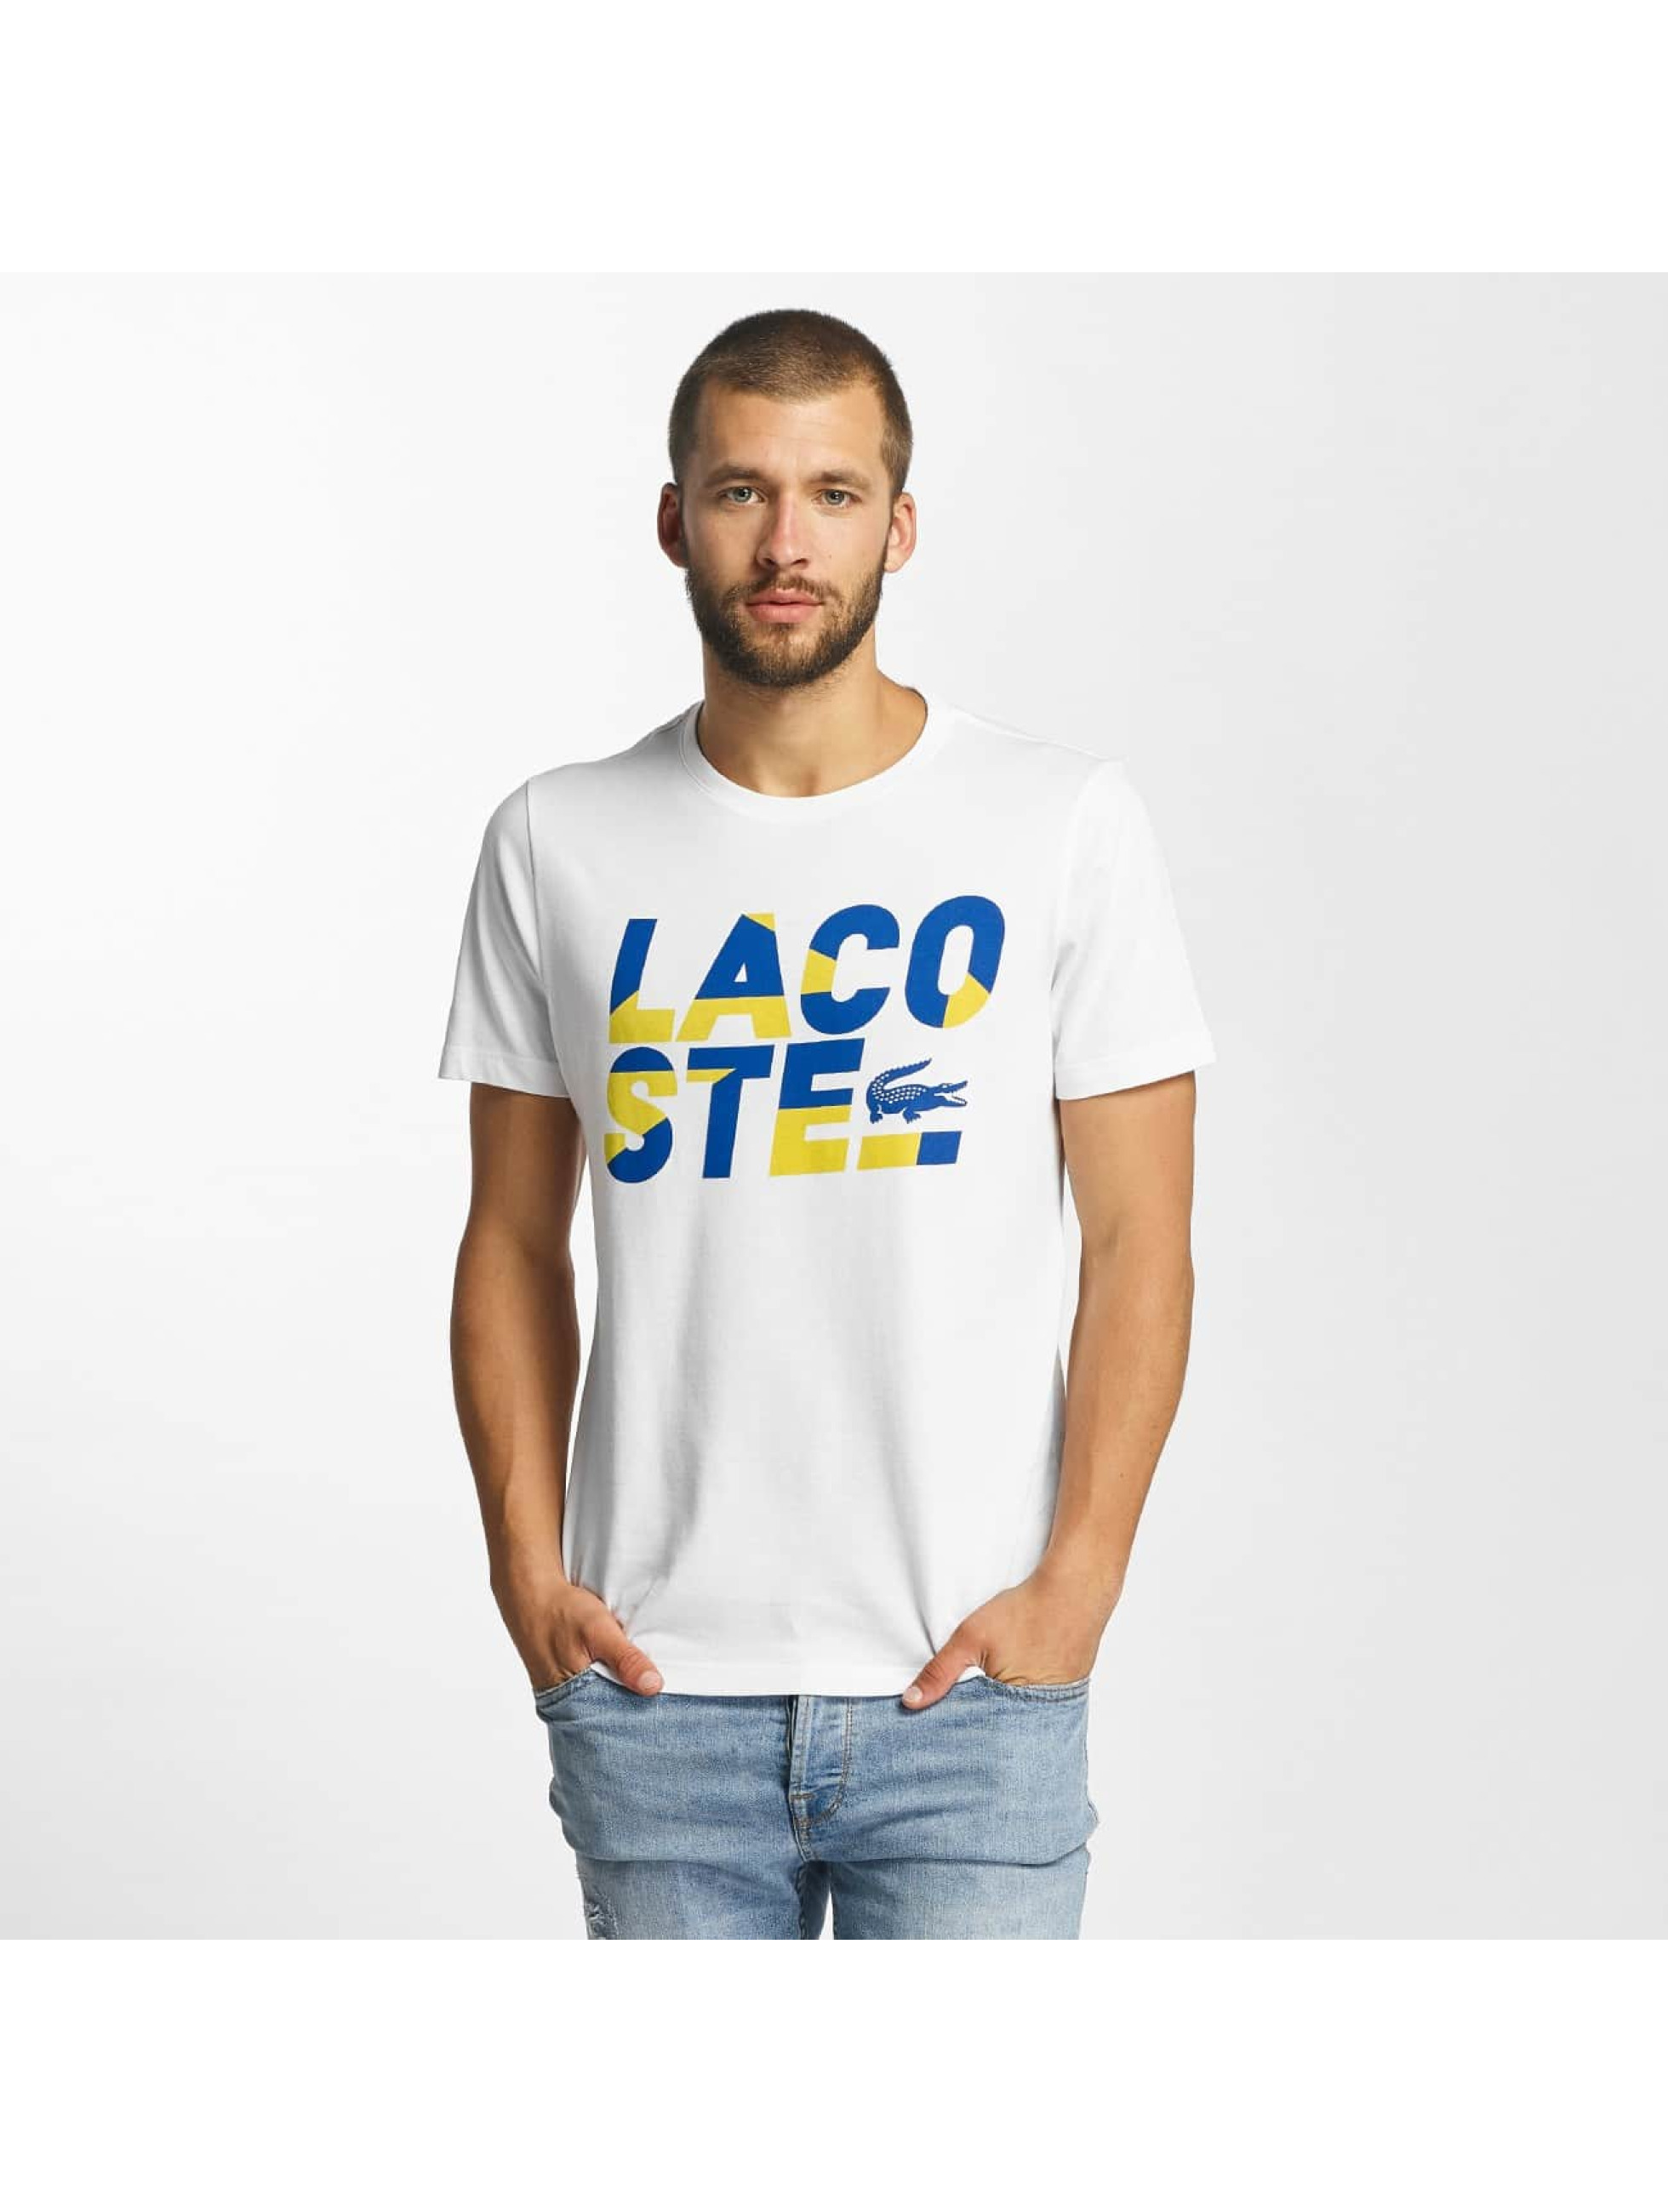 lacoste herren oberteile t shirt kroko ebay. Black Bedroom Furniture Sets. Home Design Ideas